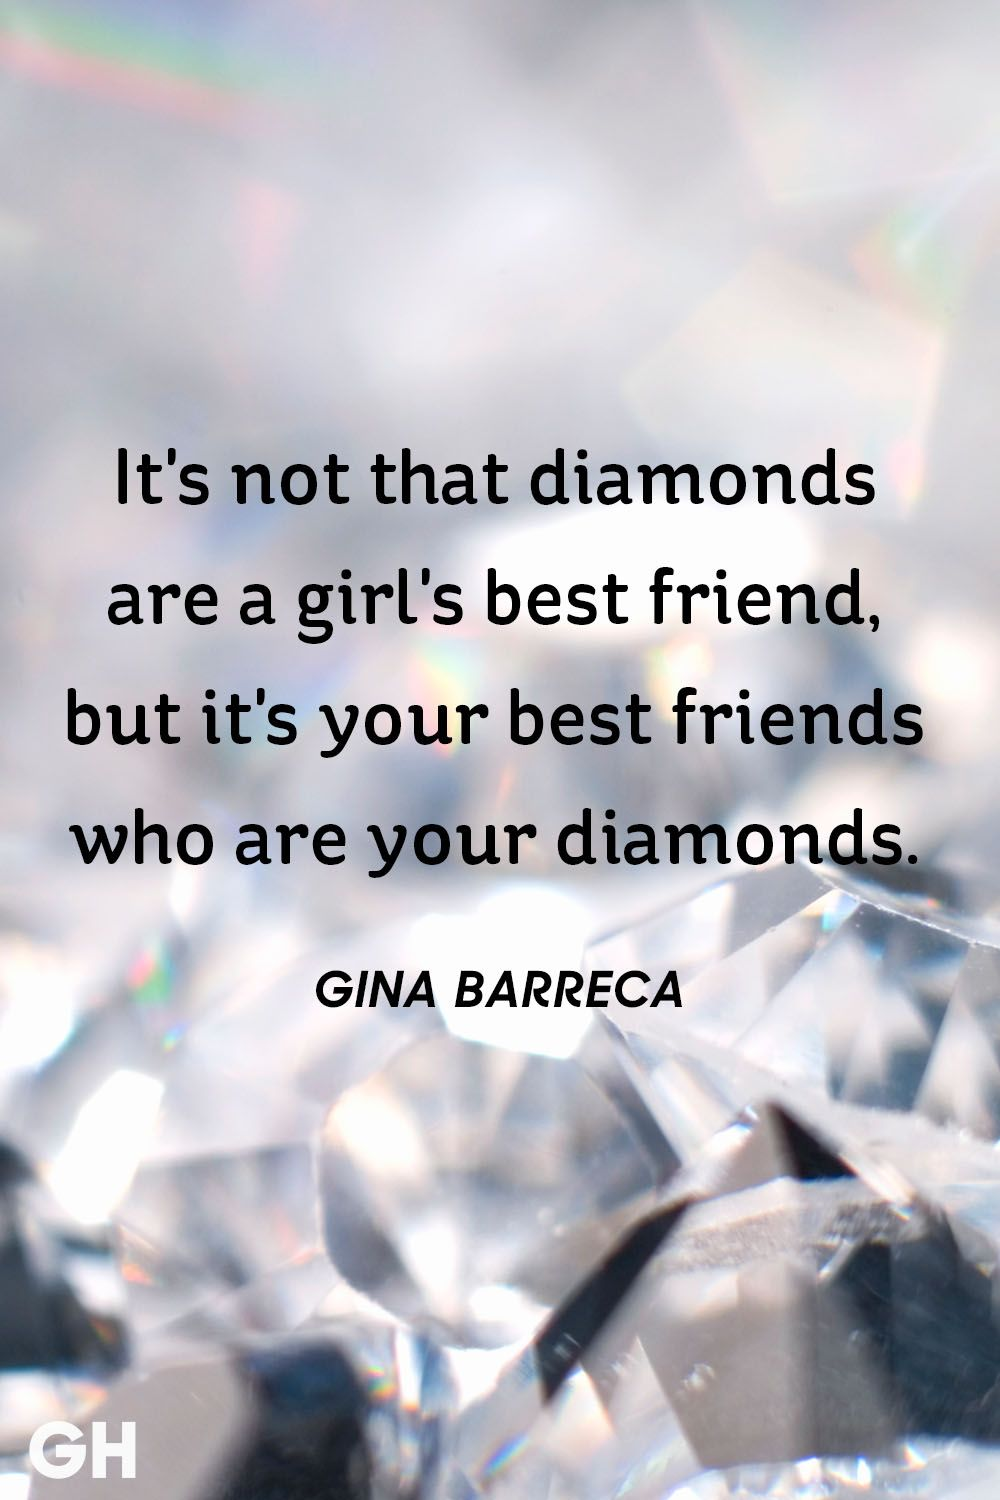 25 Short Friendship Quotes To Share With Your Best Friend   Cute Sayings  About Friends